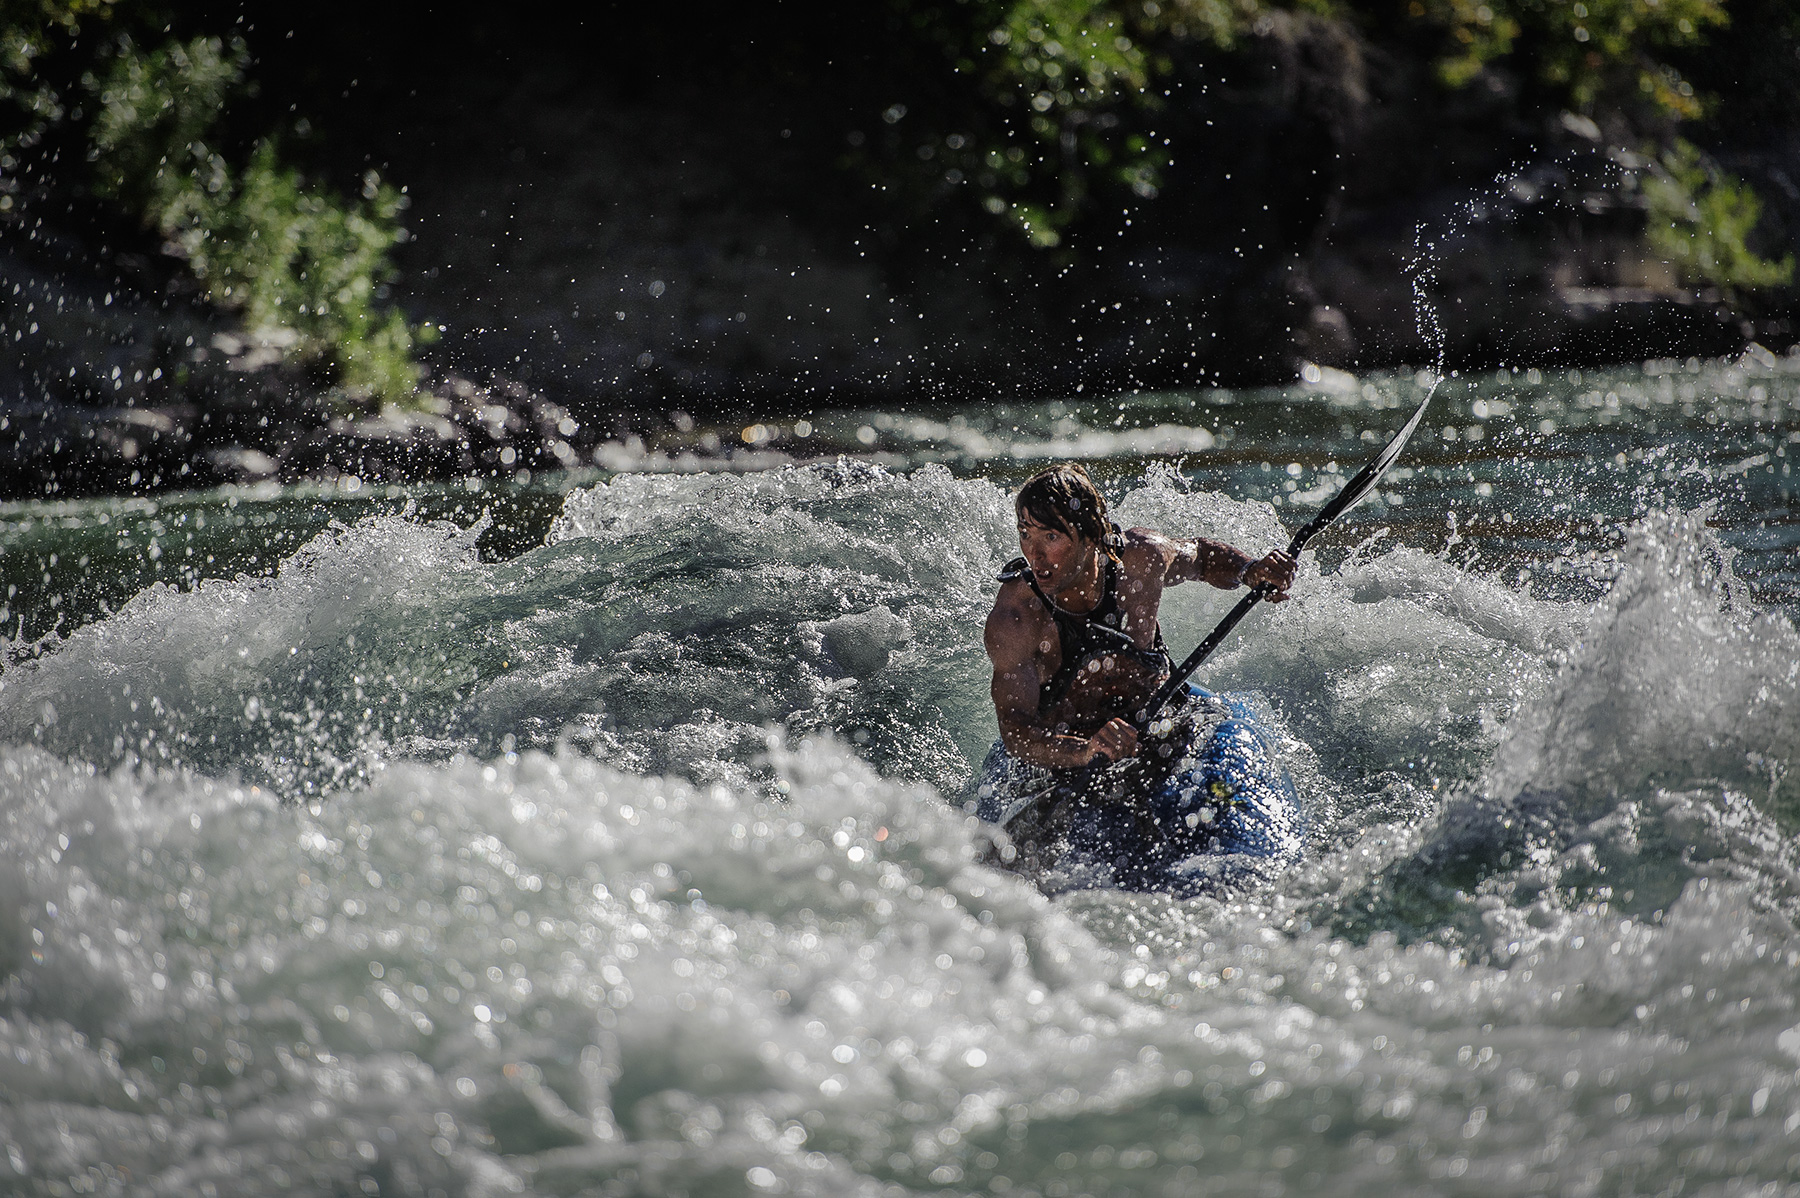 A kayaker plunges into rough waters in a hard stretch of the Snake River in Wyoming